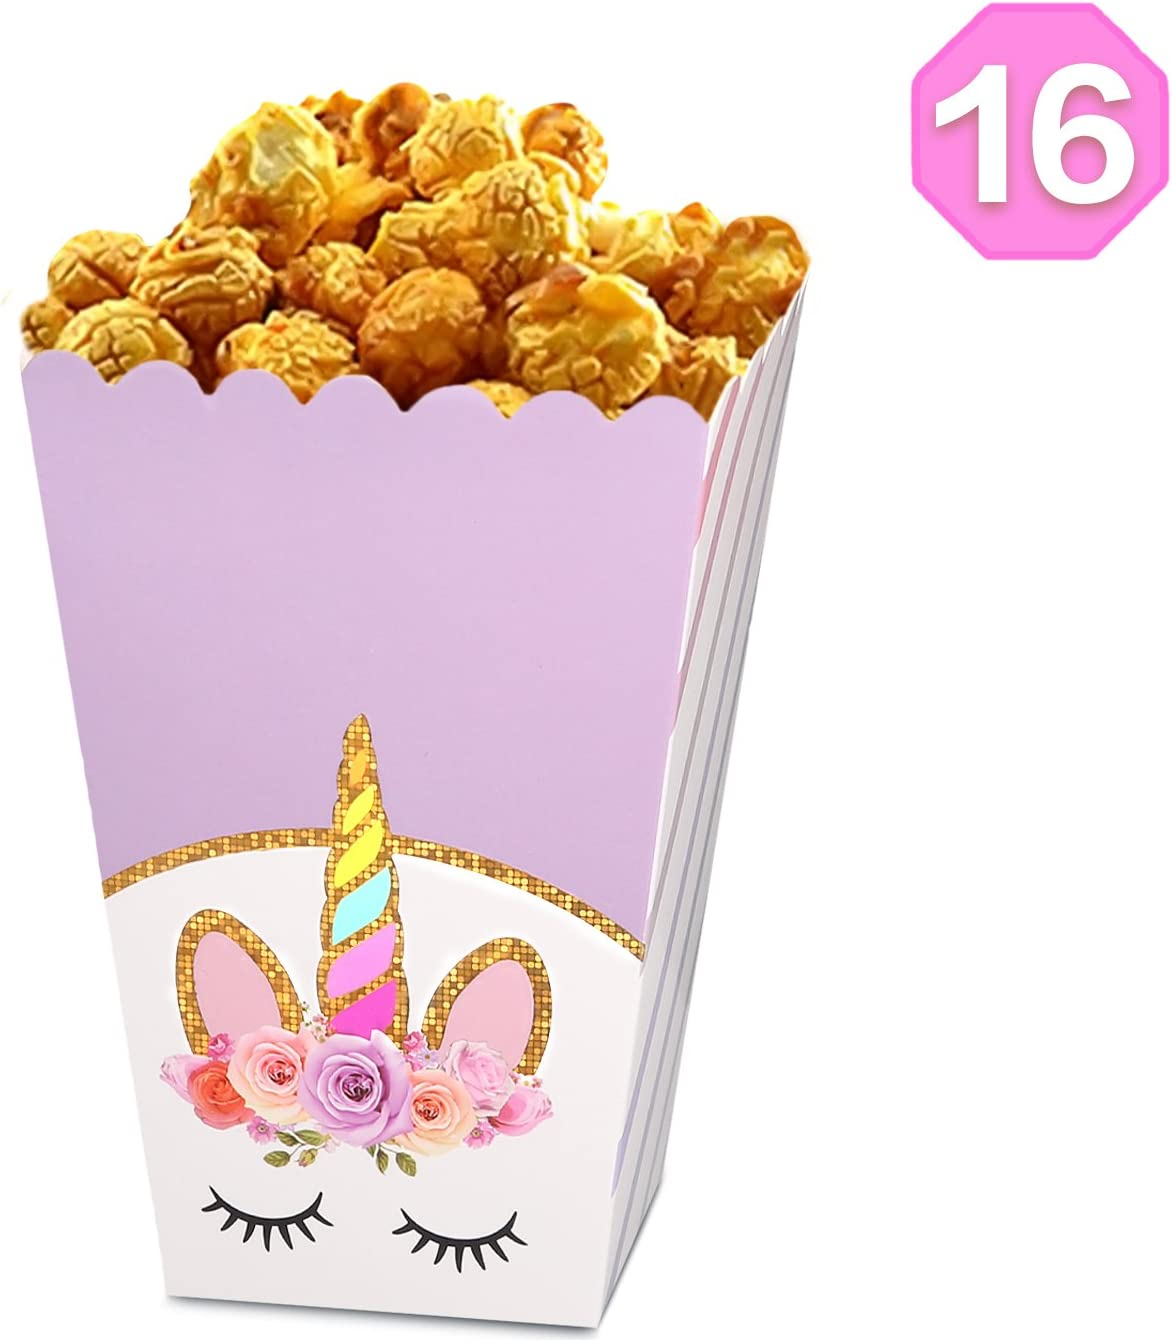 Unicorn Party Popcorn Boxes for 16 Guests